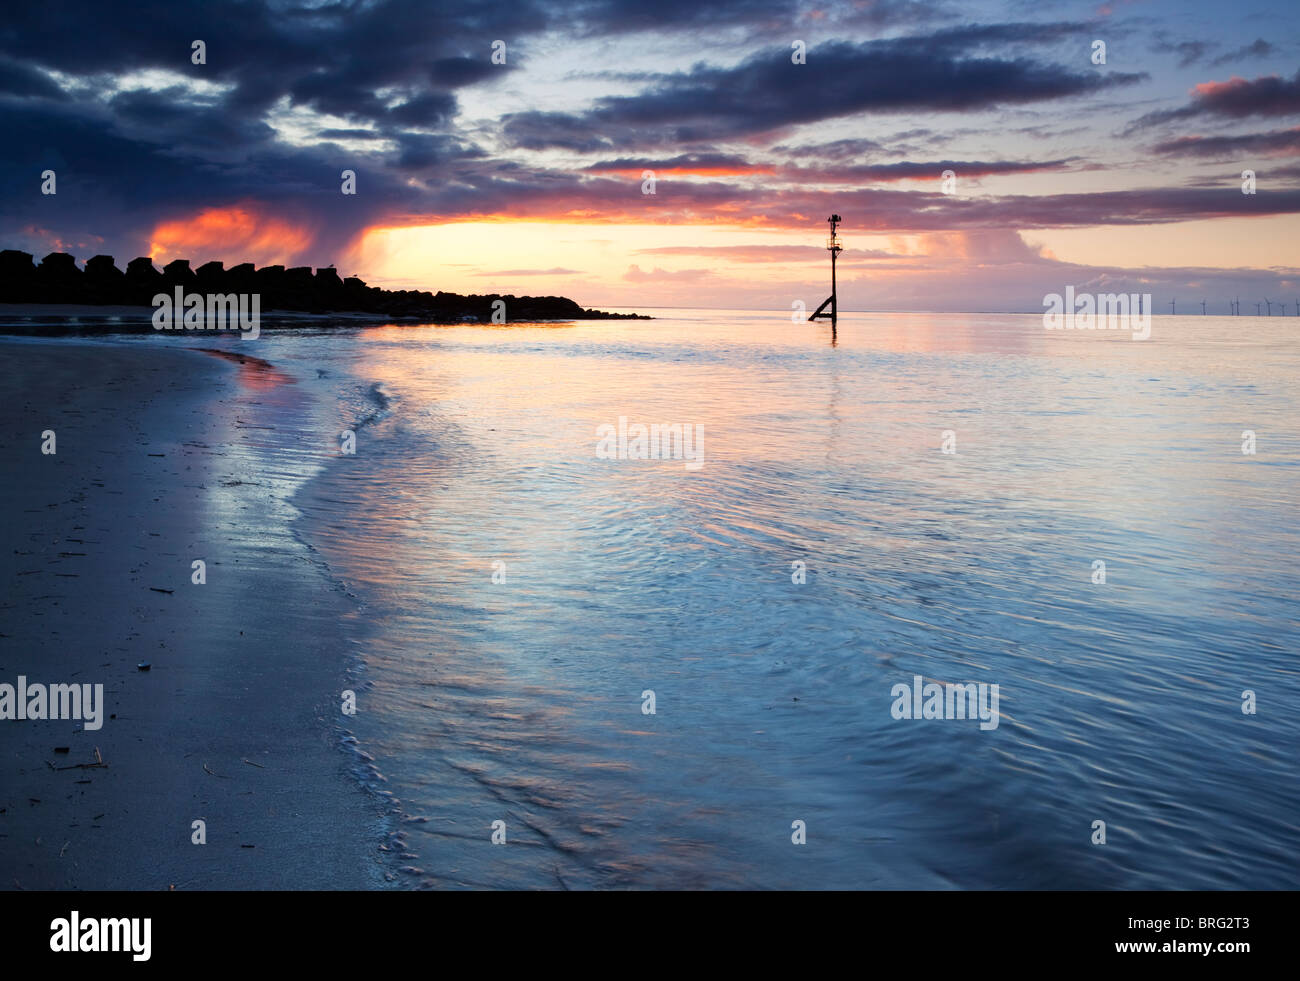 Low Tide Sunset, New Brighton Beach, Wirral Peninsula - Stock Image